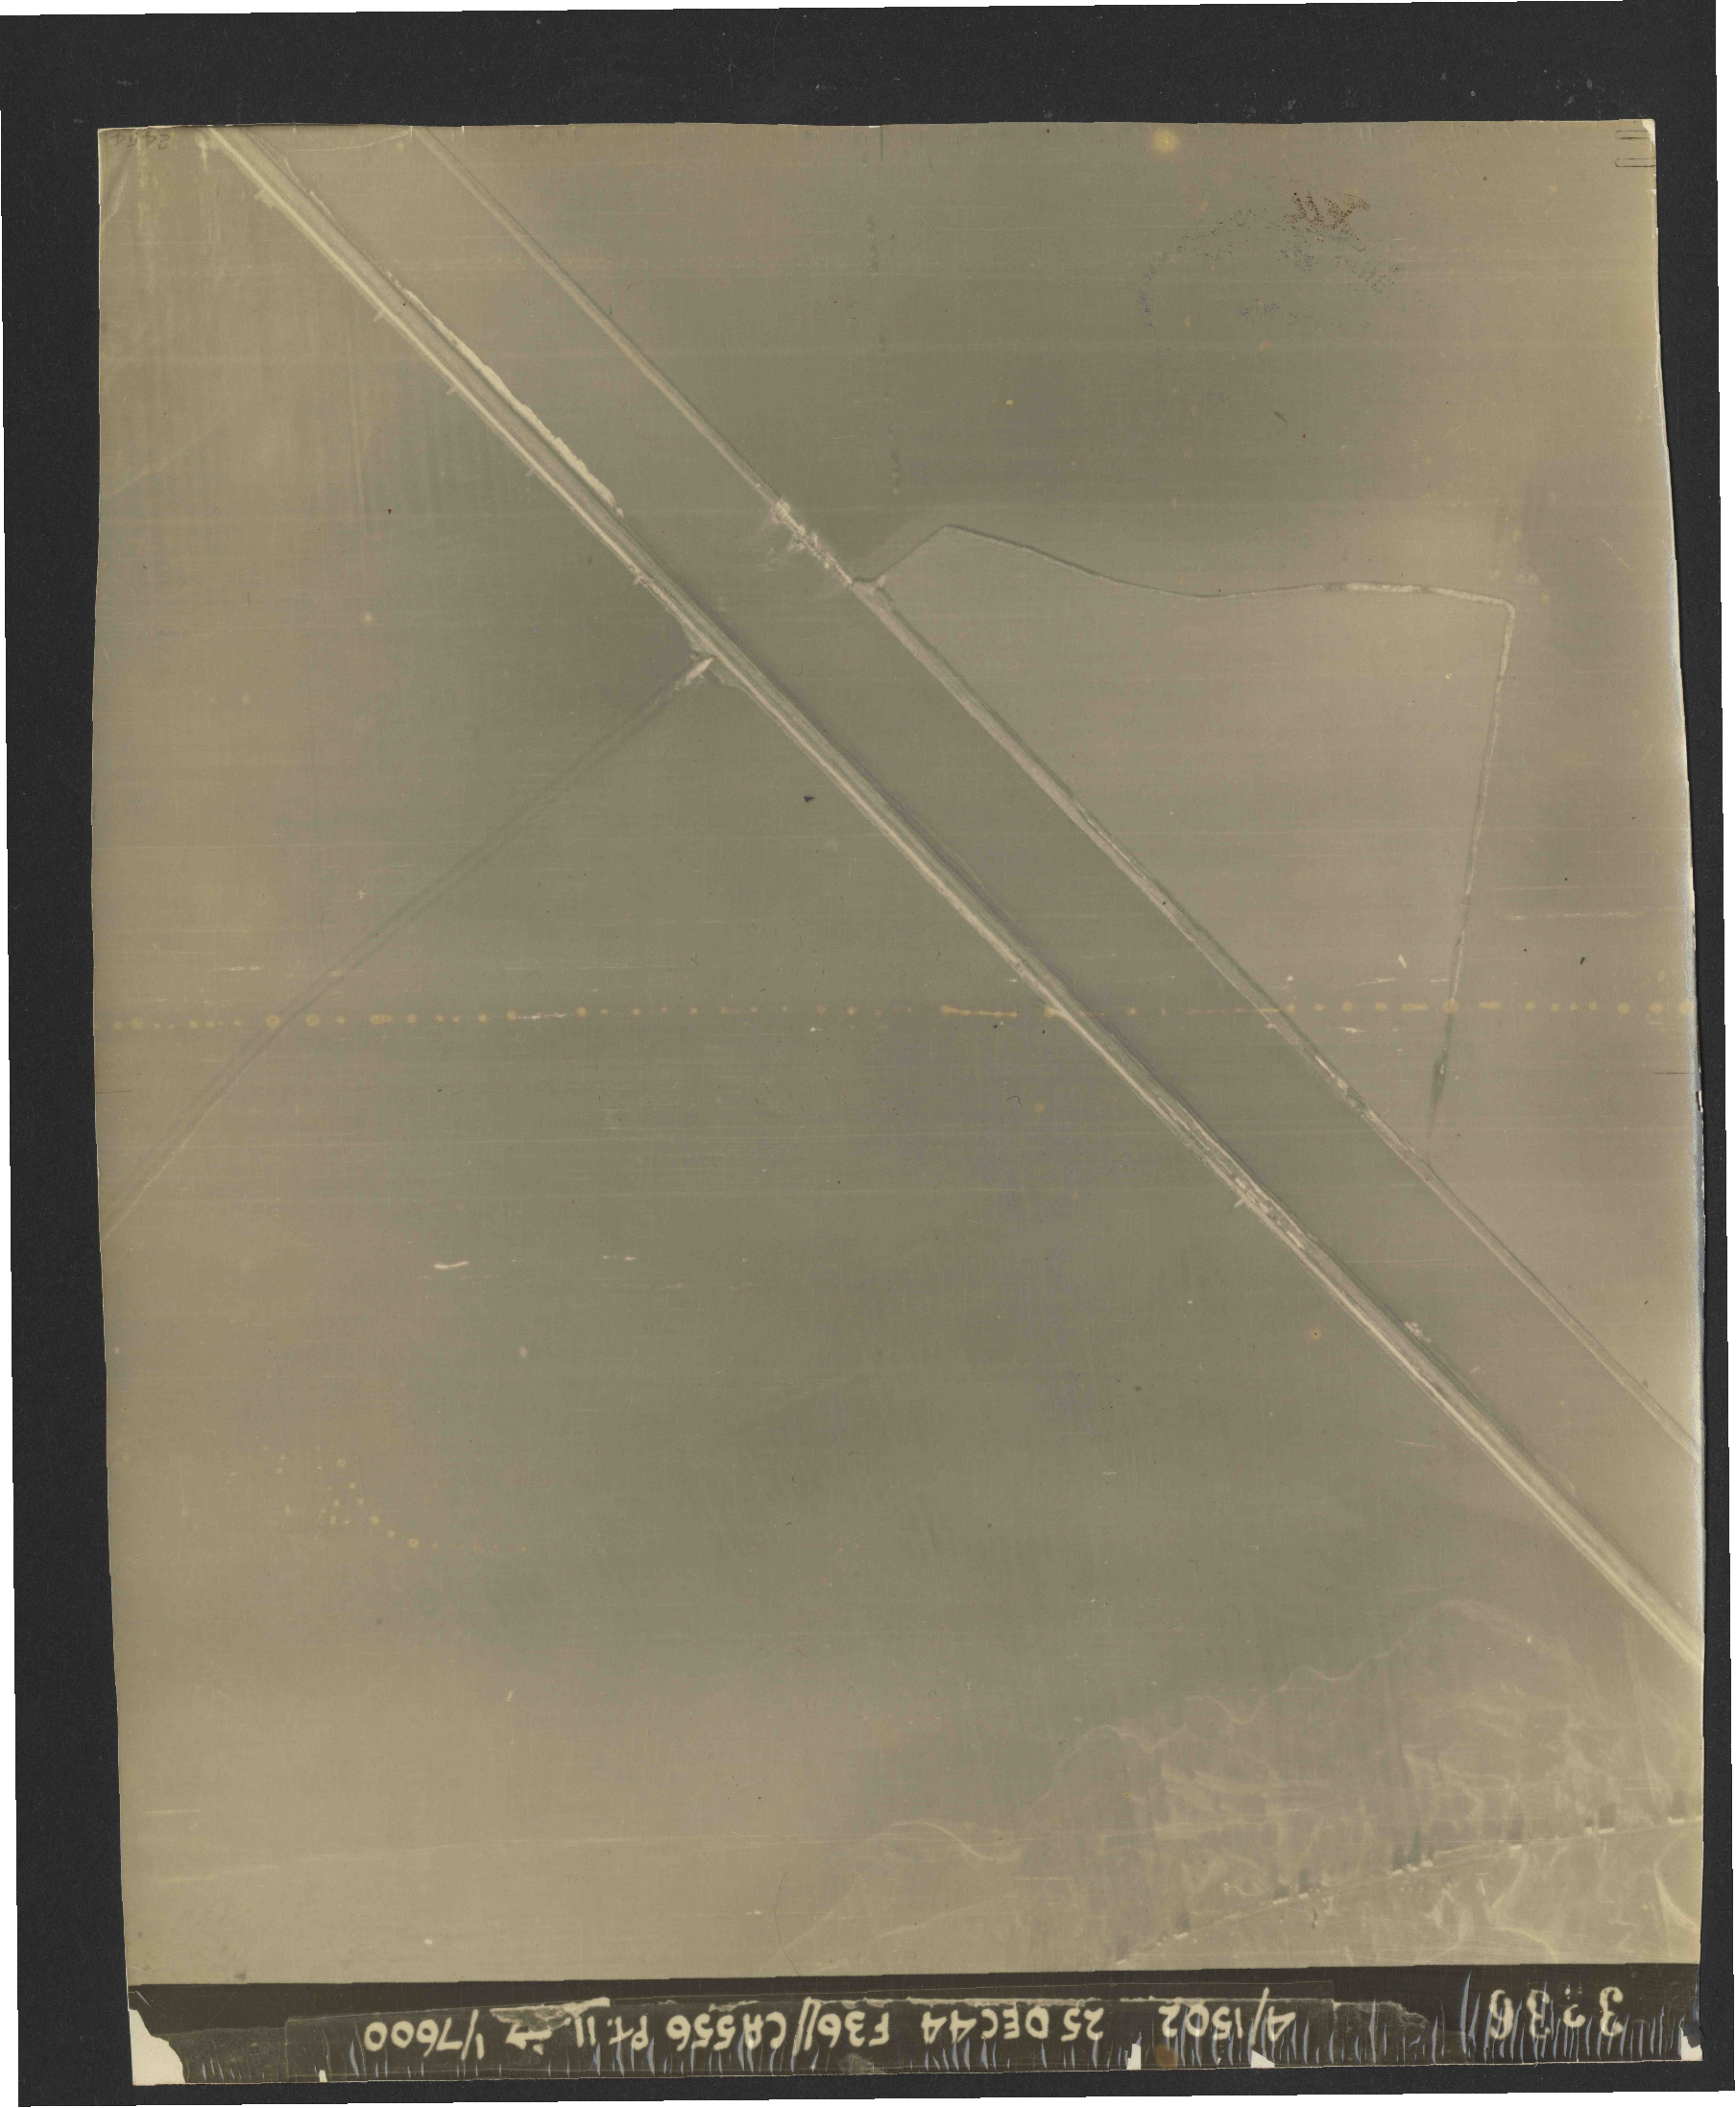 Collection RAF aerial photos 1940-1945 - flight 306, run 12, photo 3336